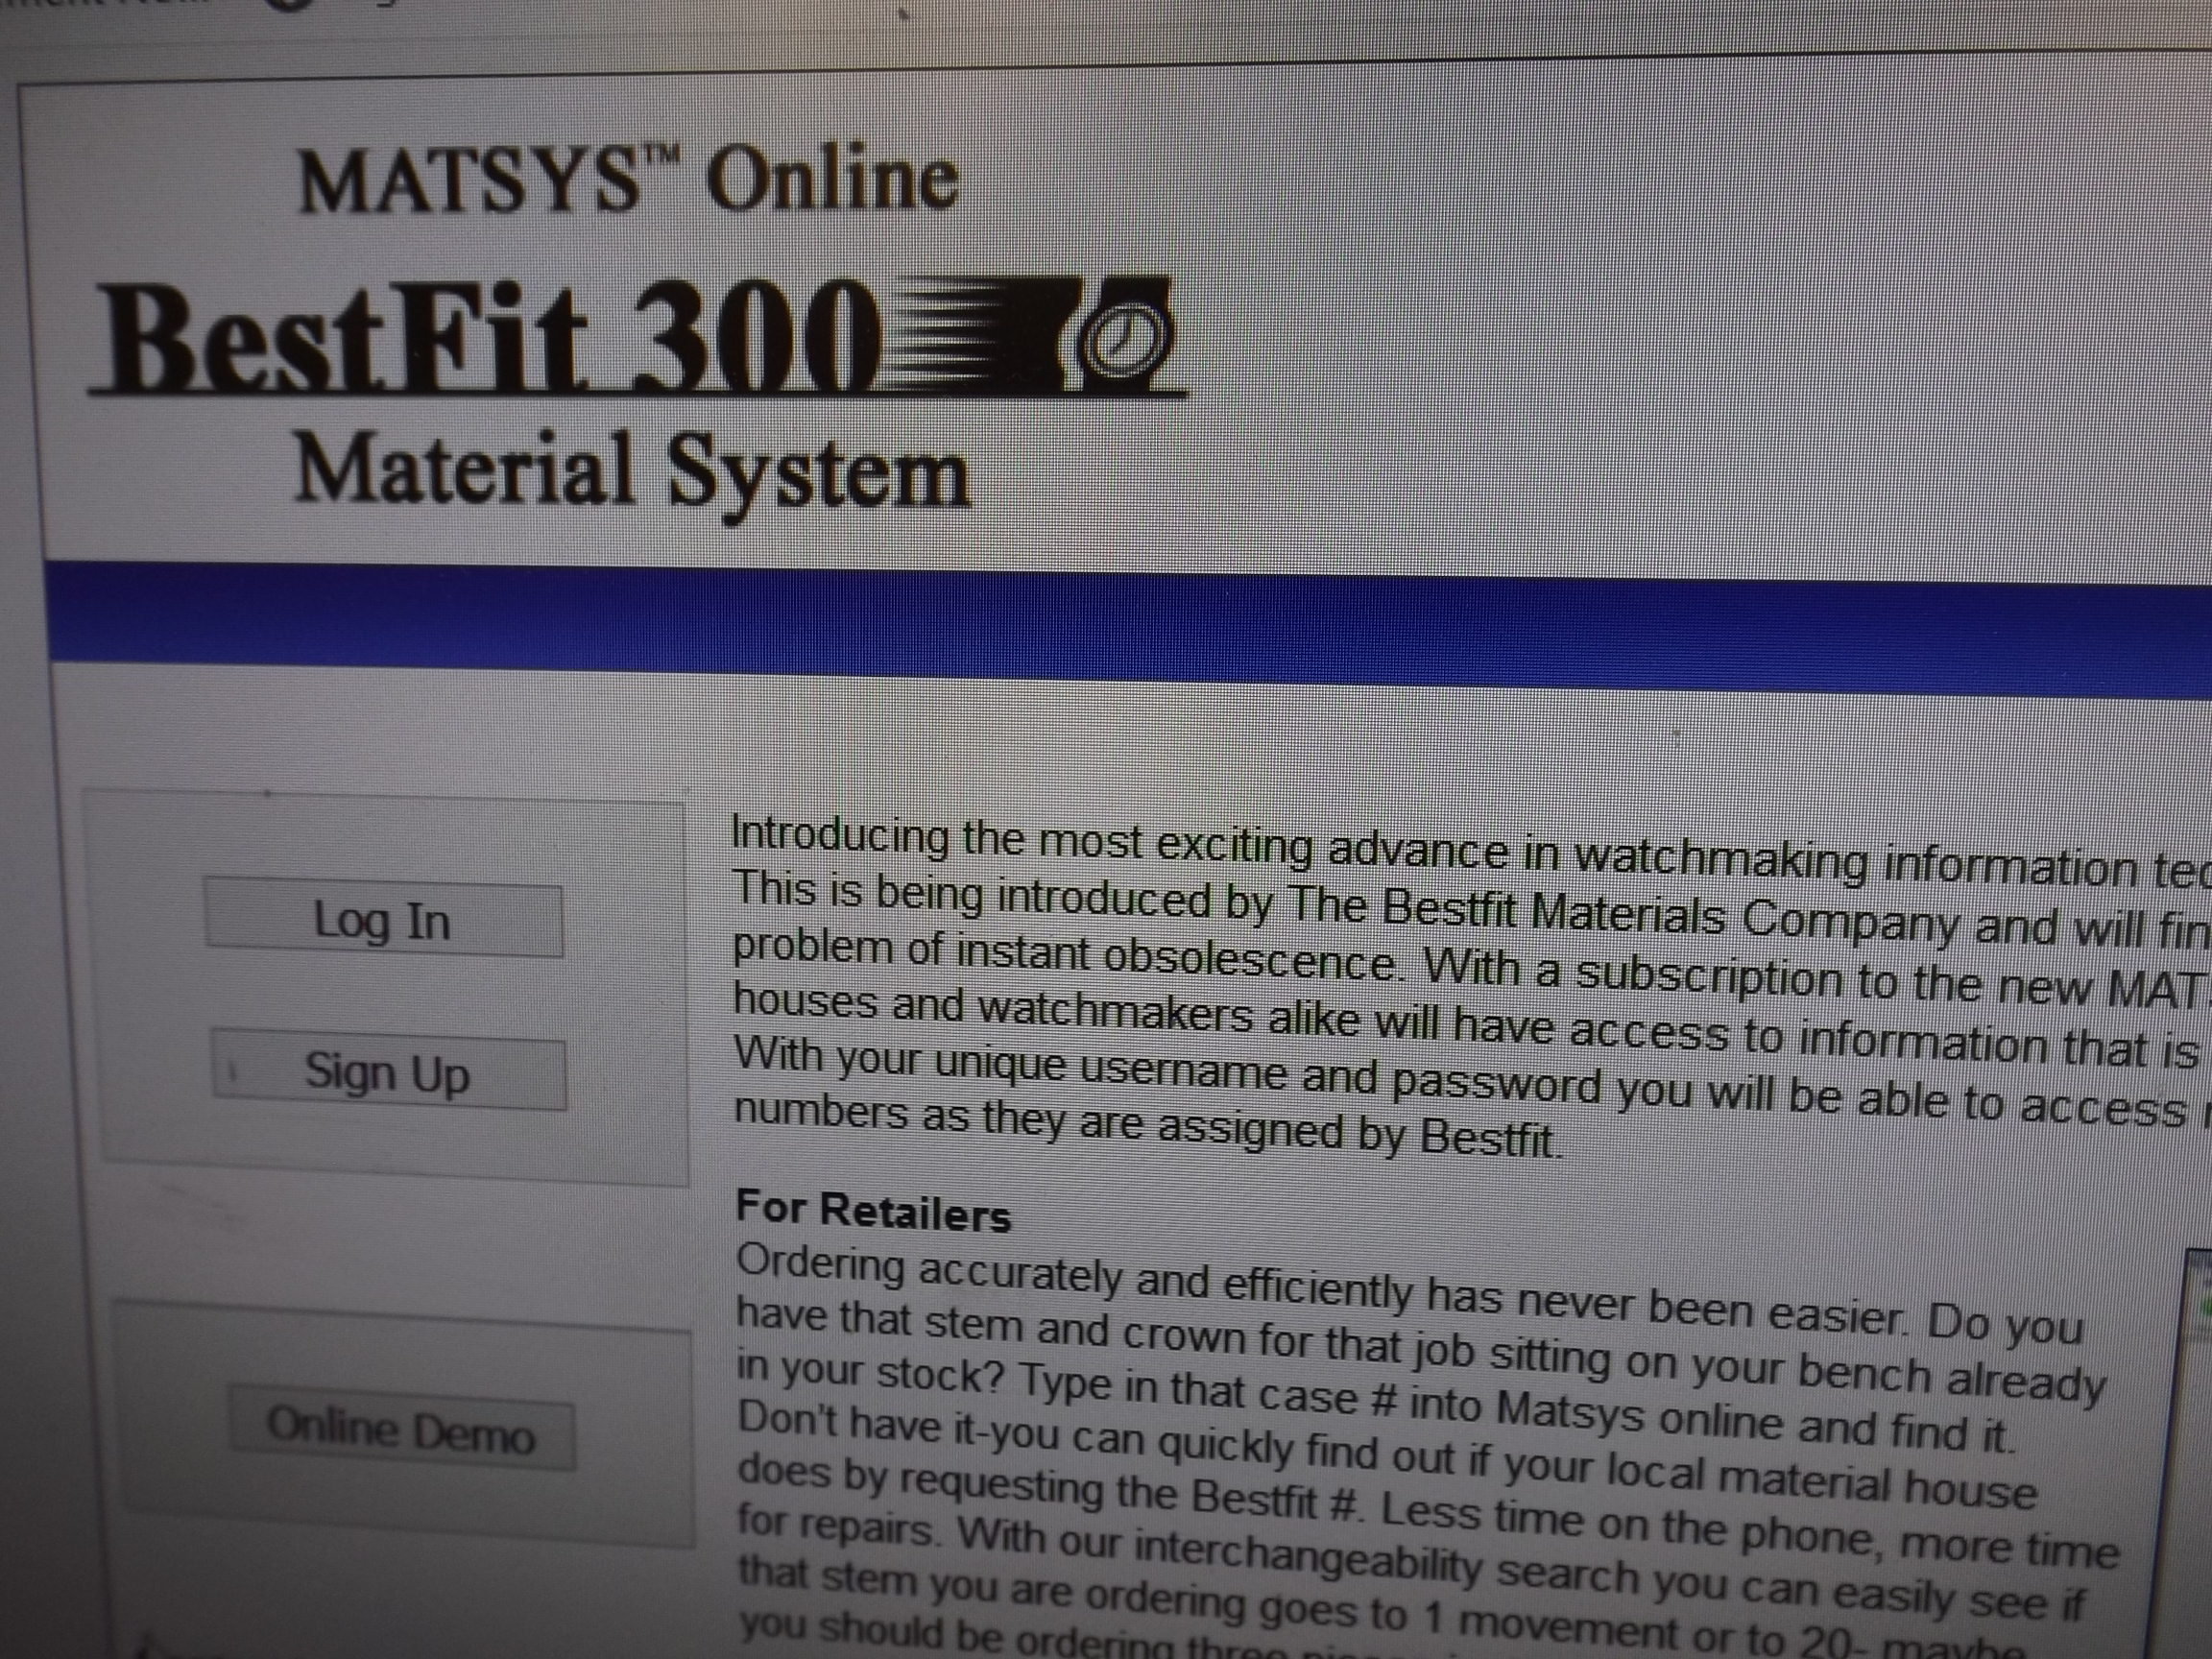 MATSYS-1 MATSYS Online Bestfit 300 Material System-- You Need This!